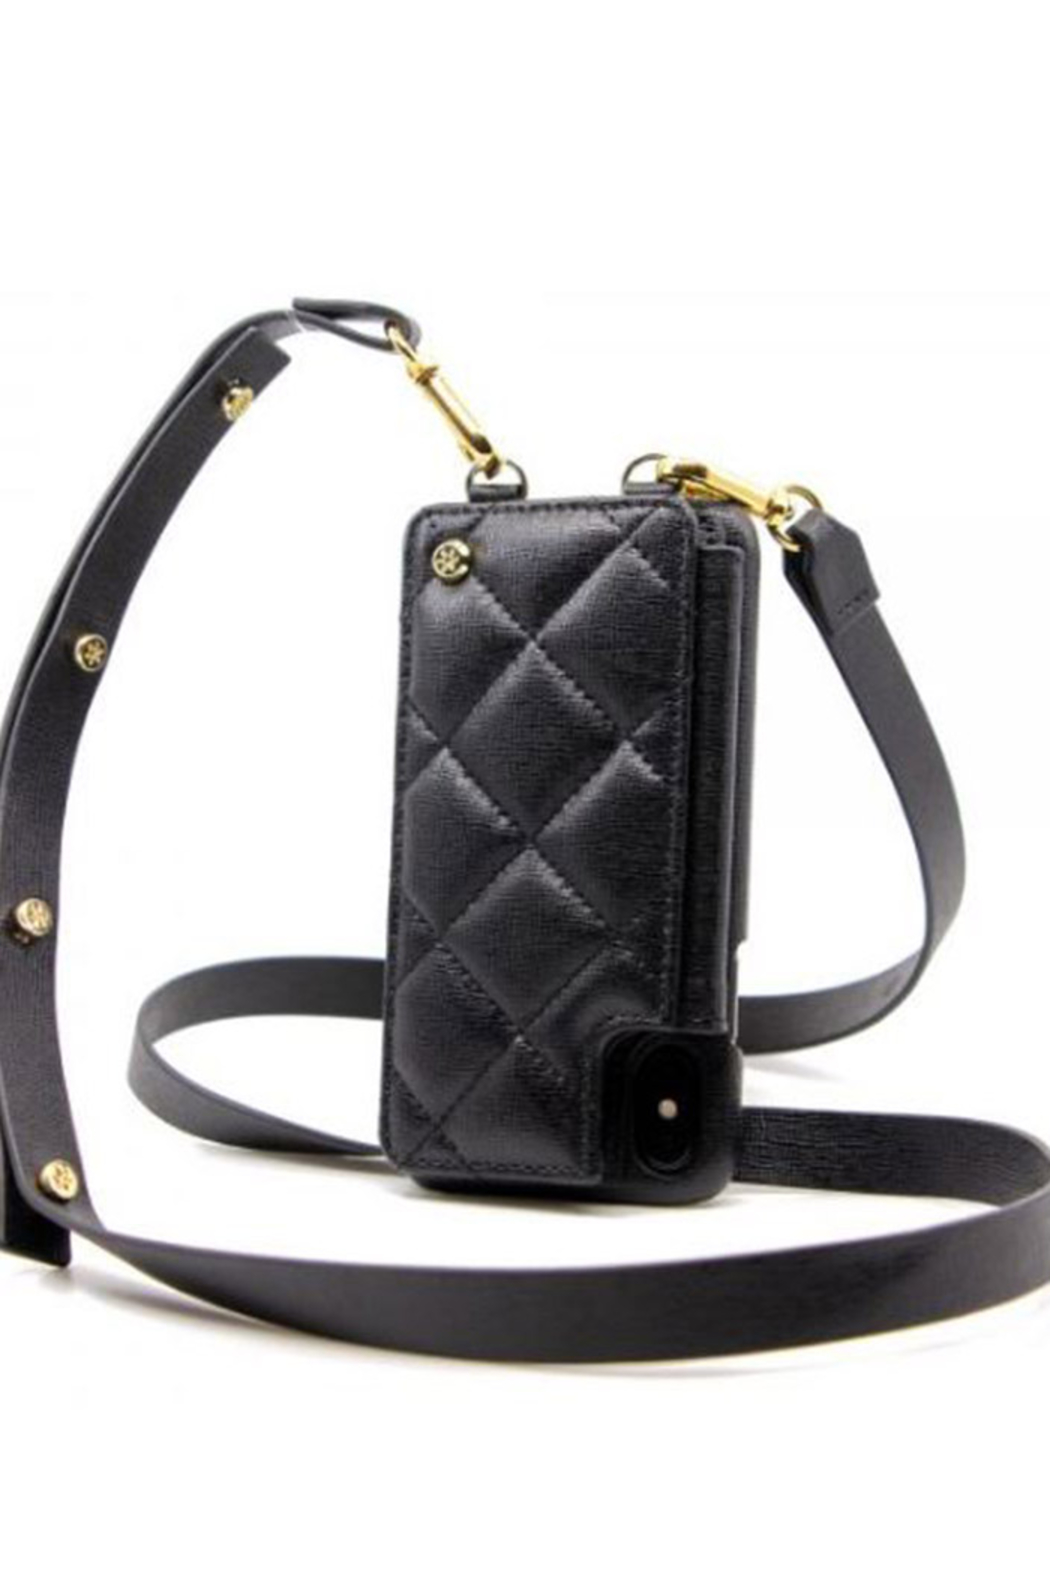 dbc359826e1 Goldno.8 The Crossbody Phone Case from New York by Let's Bag It ...